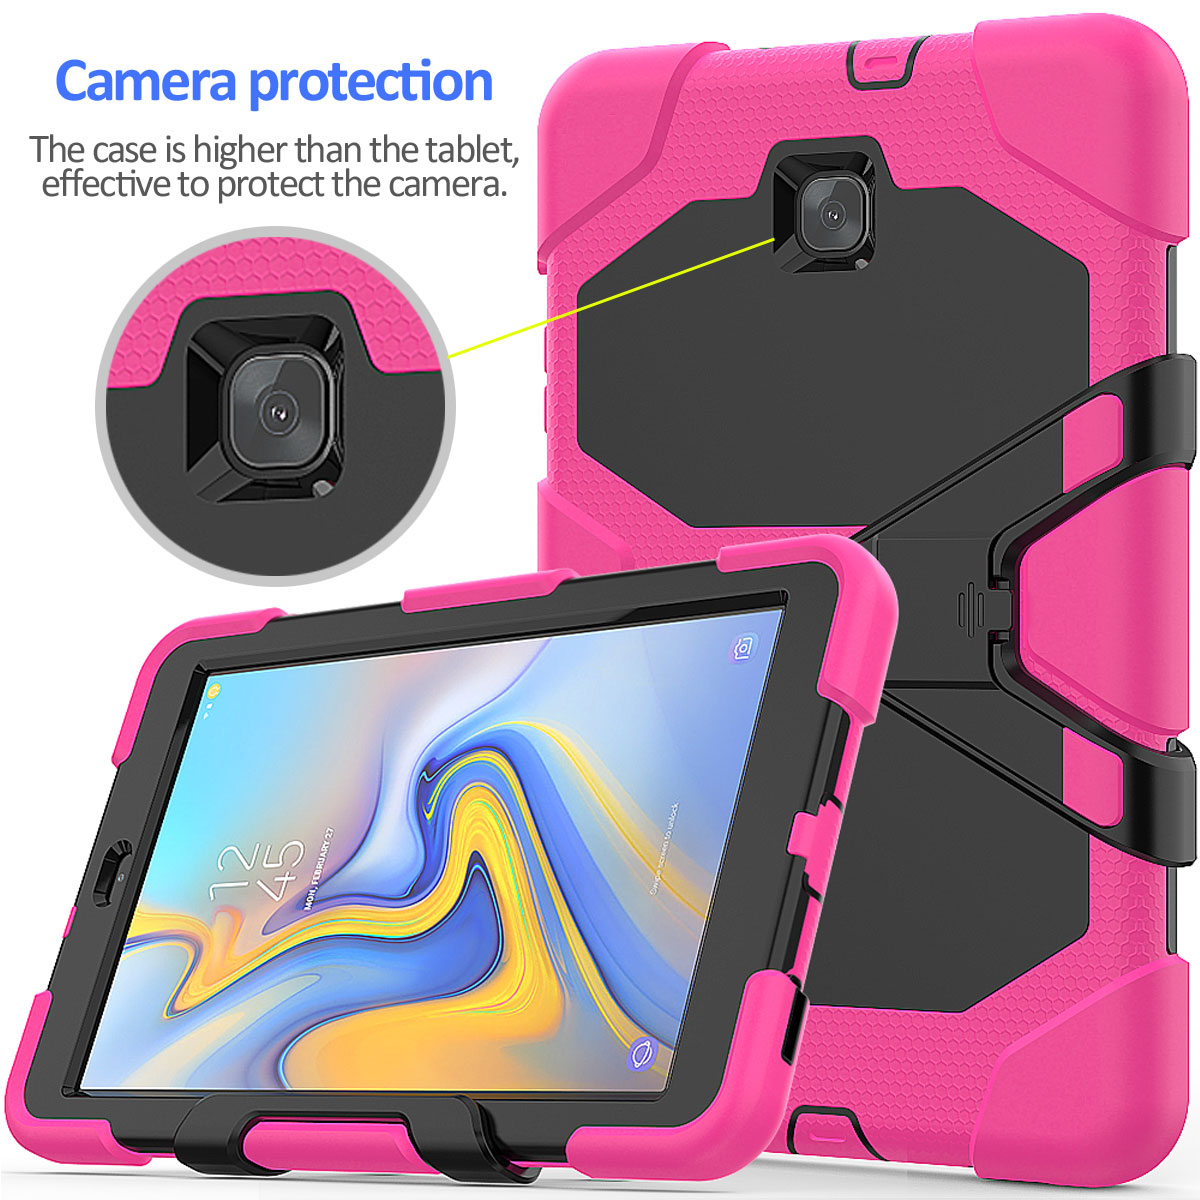 Rugged-Hard-Case-For-Samsung-Galaxy-Tab-A-8-0-2018-SM-T387-with-Screen-Protector thumbnail 16